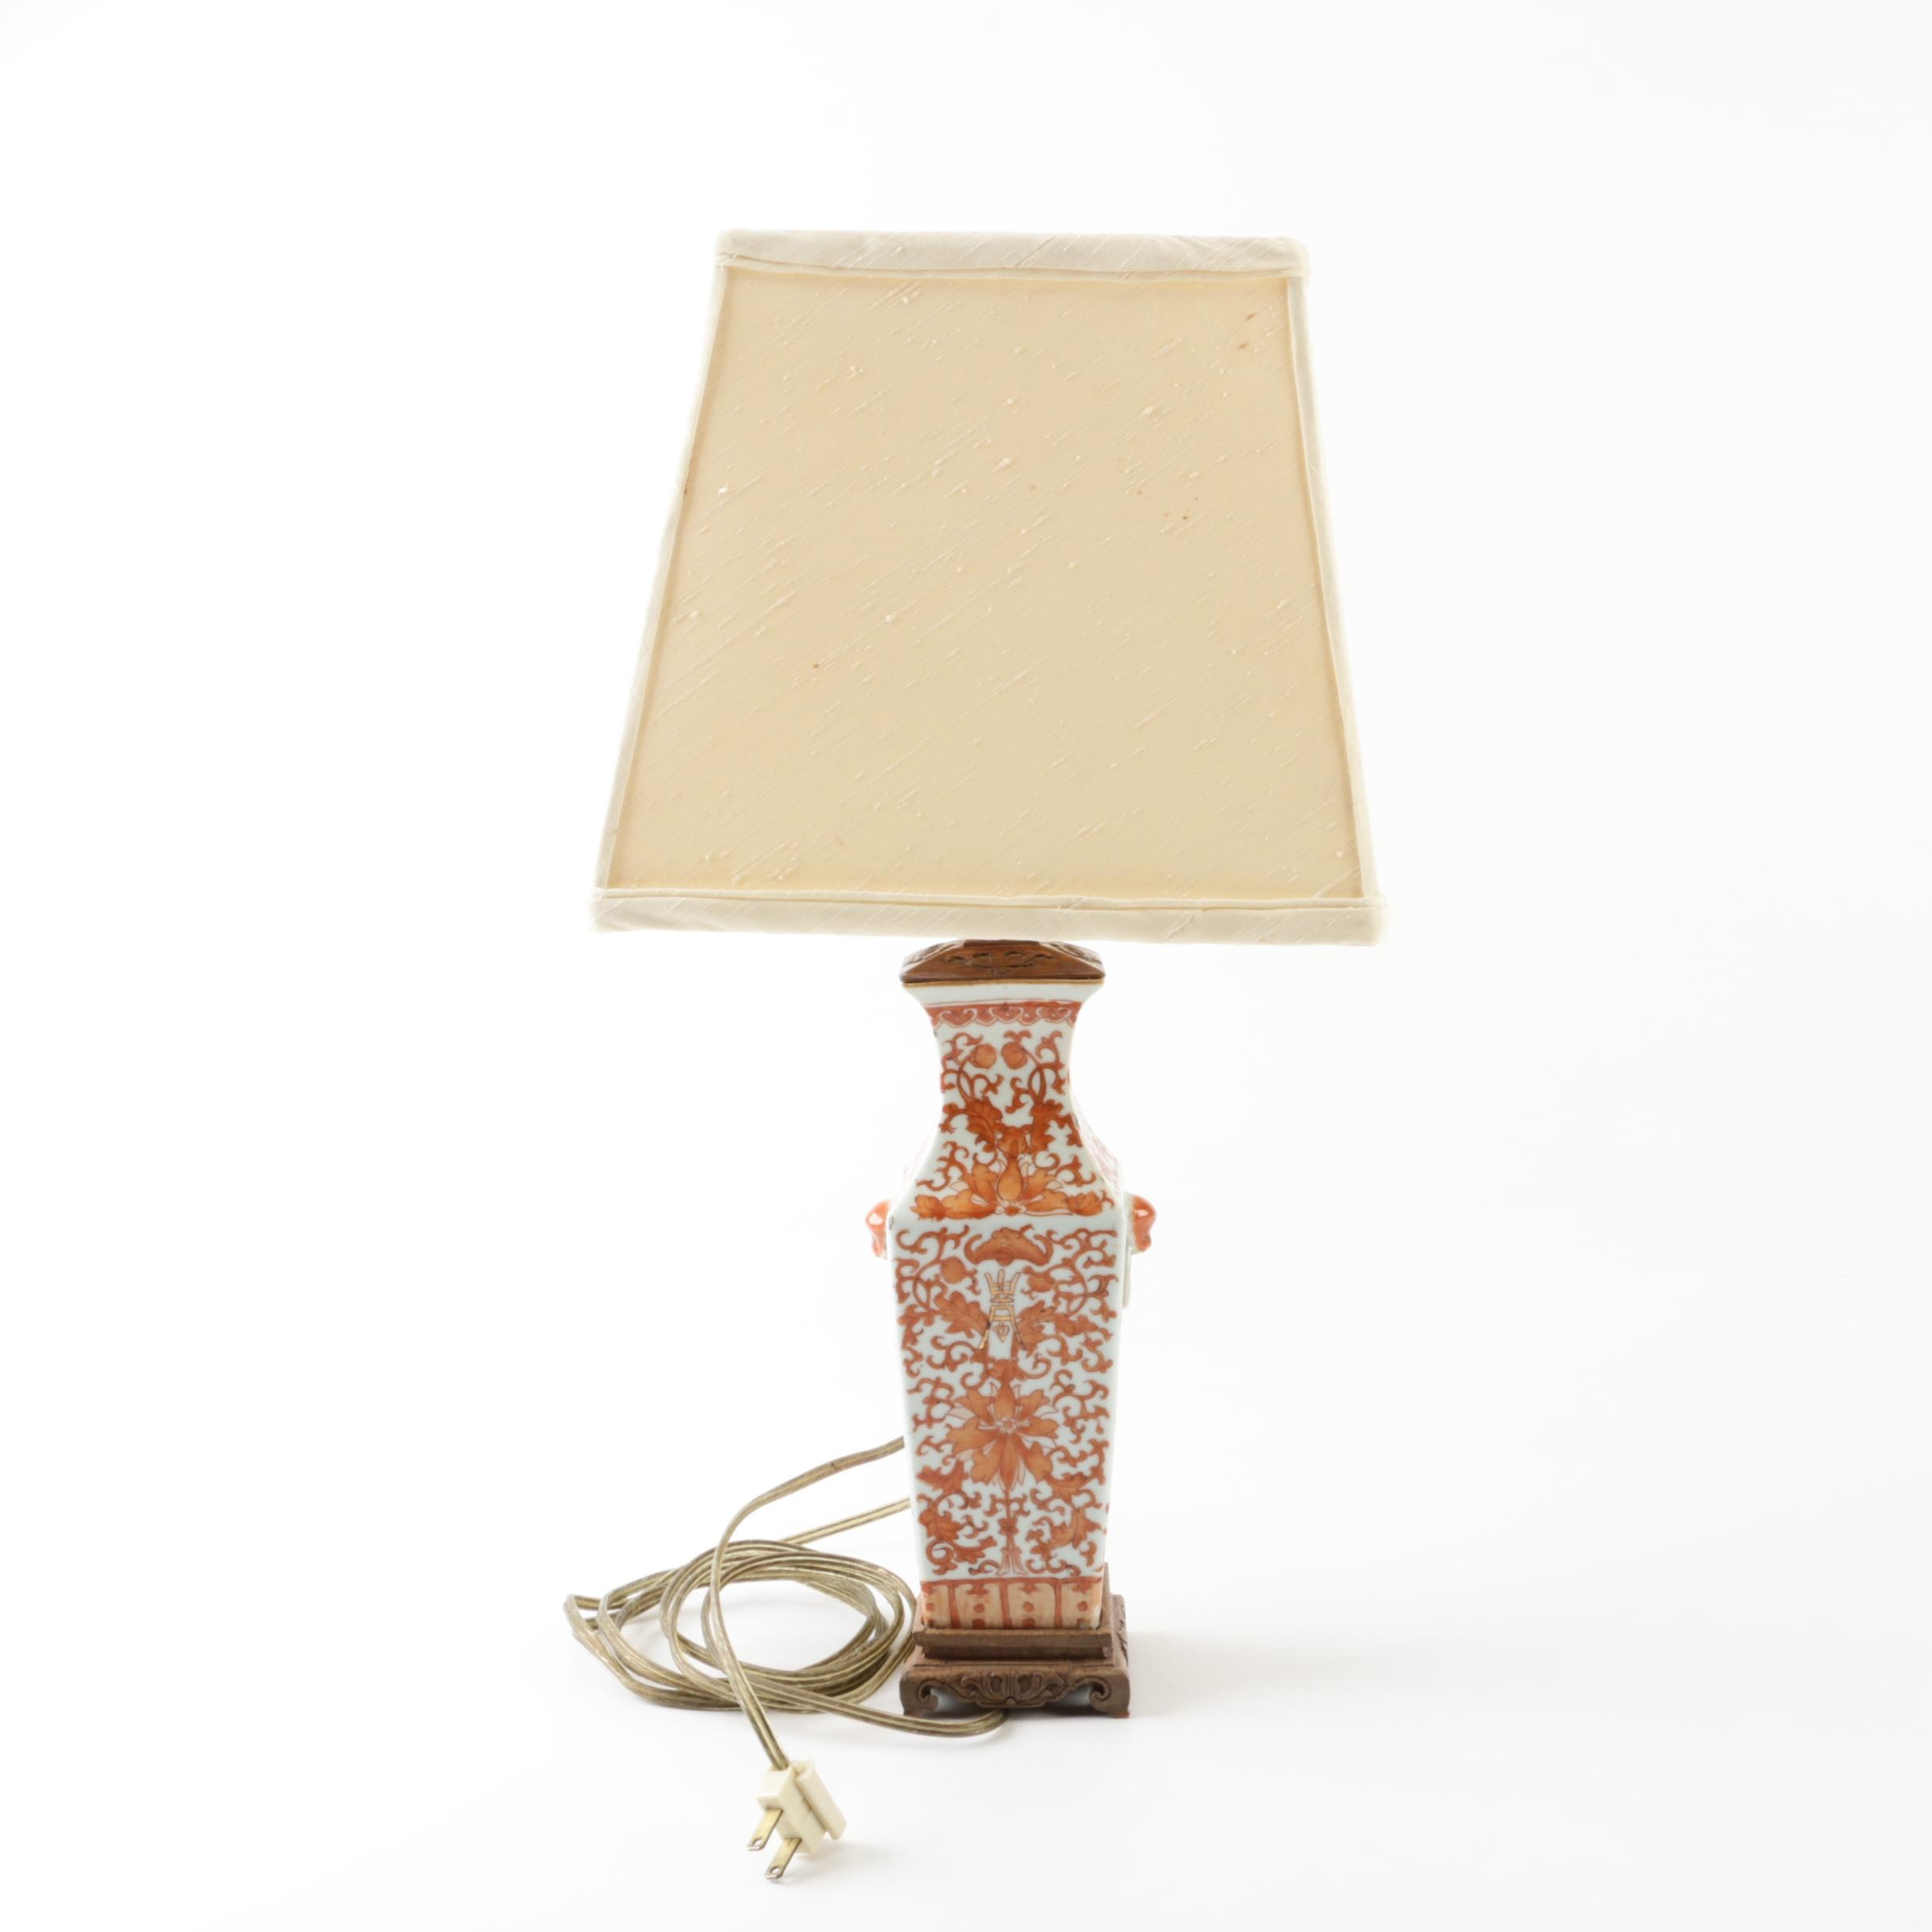 Chinese Decorated Porcelain Table Lamp with Carved Wood Accents